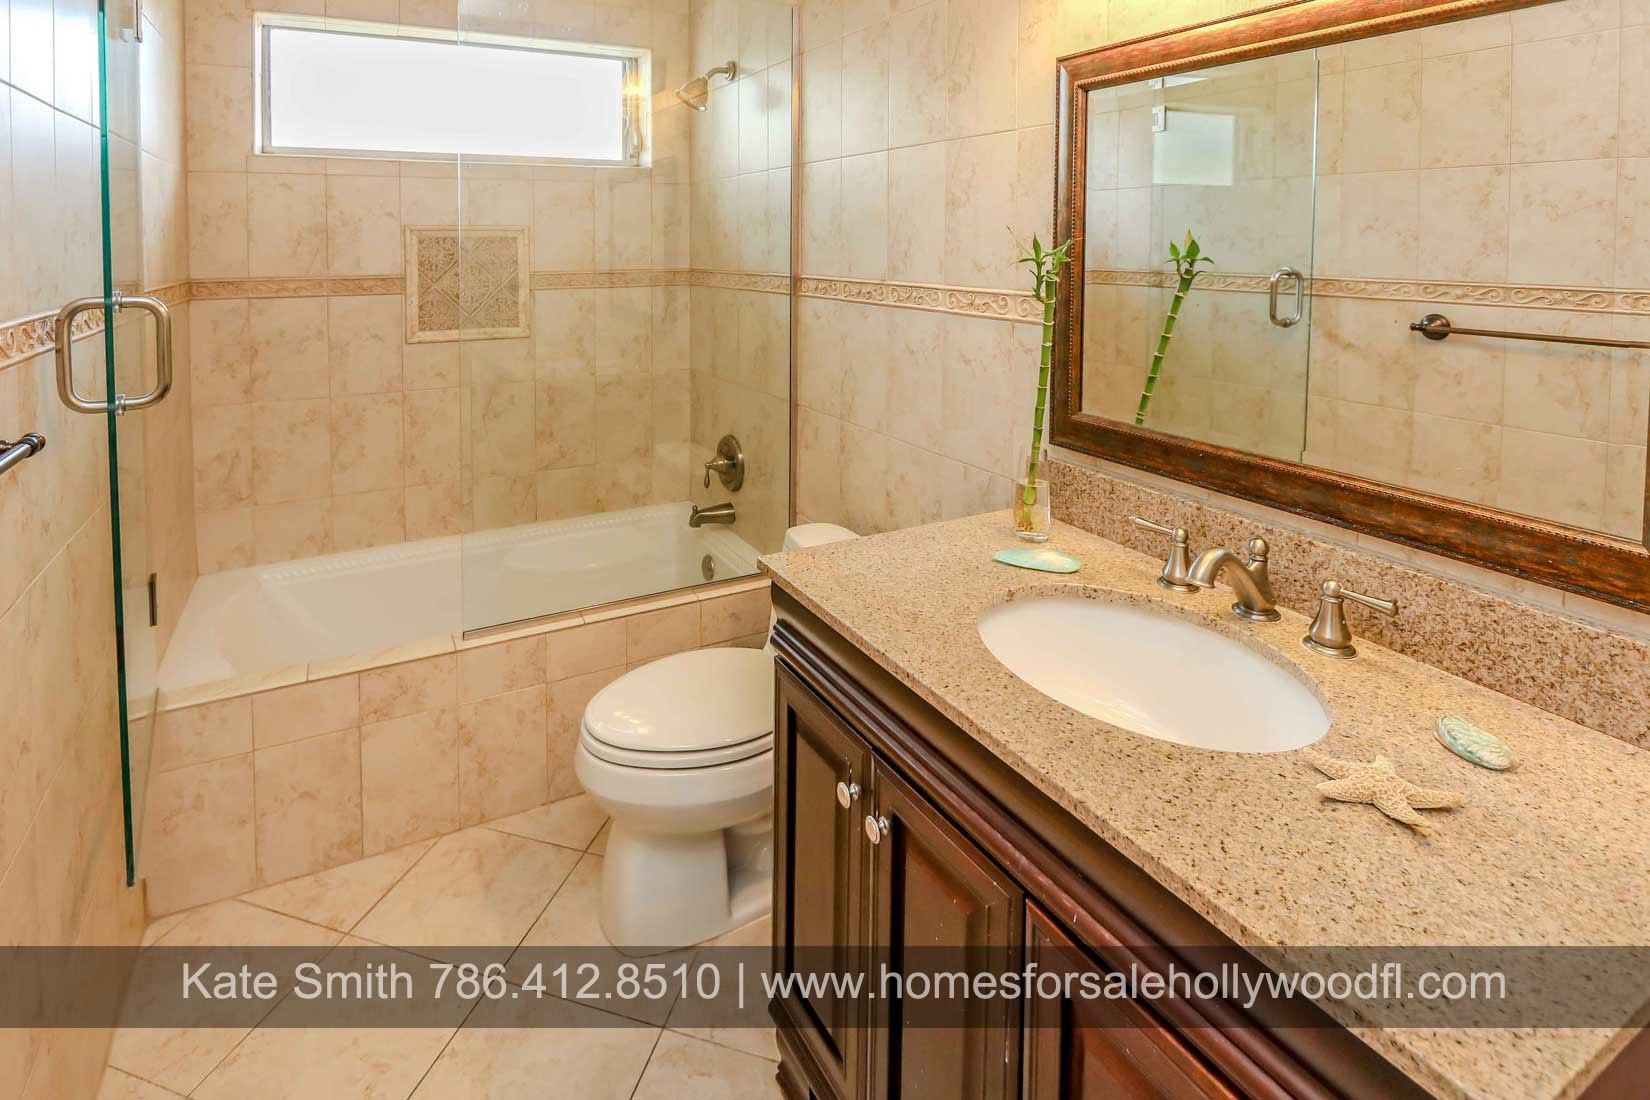 5408 NE 22 AVE Coral Ridge- 2 bed-2-bath home for sale by Realtor Kate Smith 7864128510